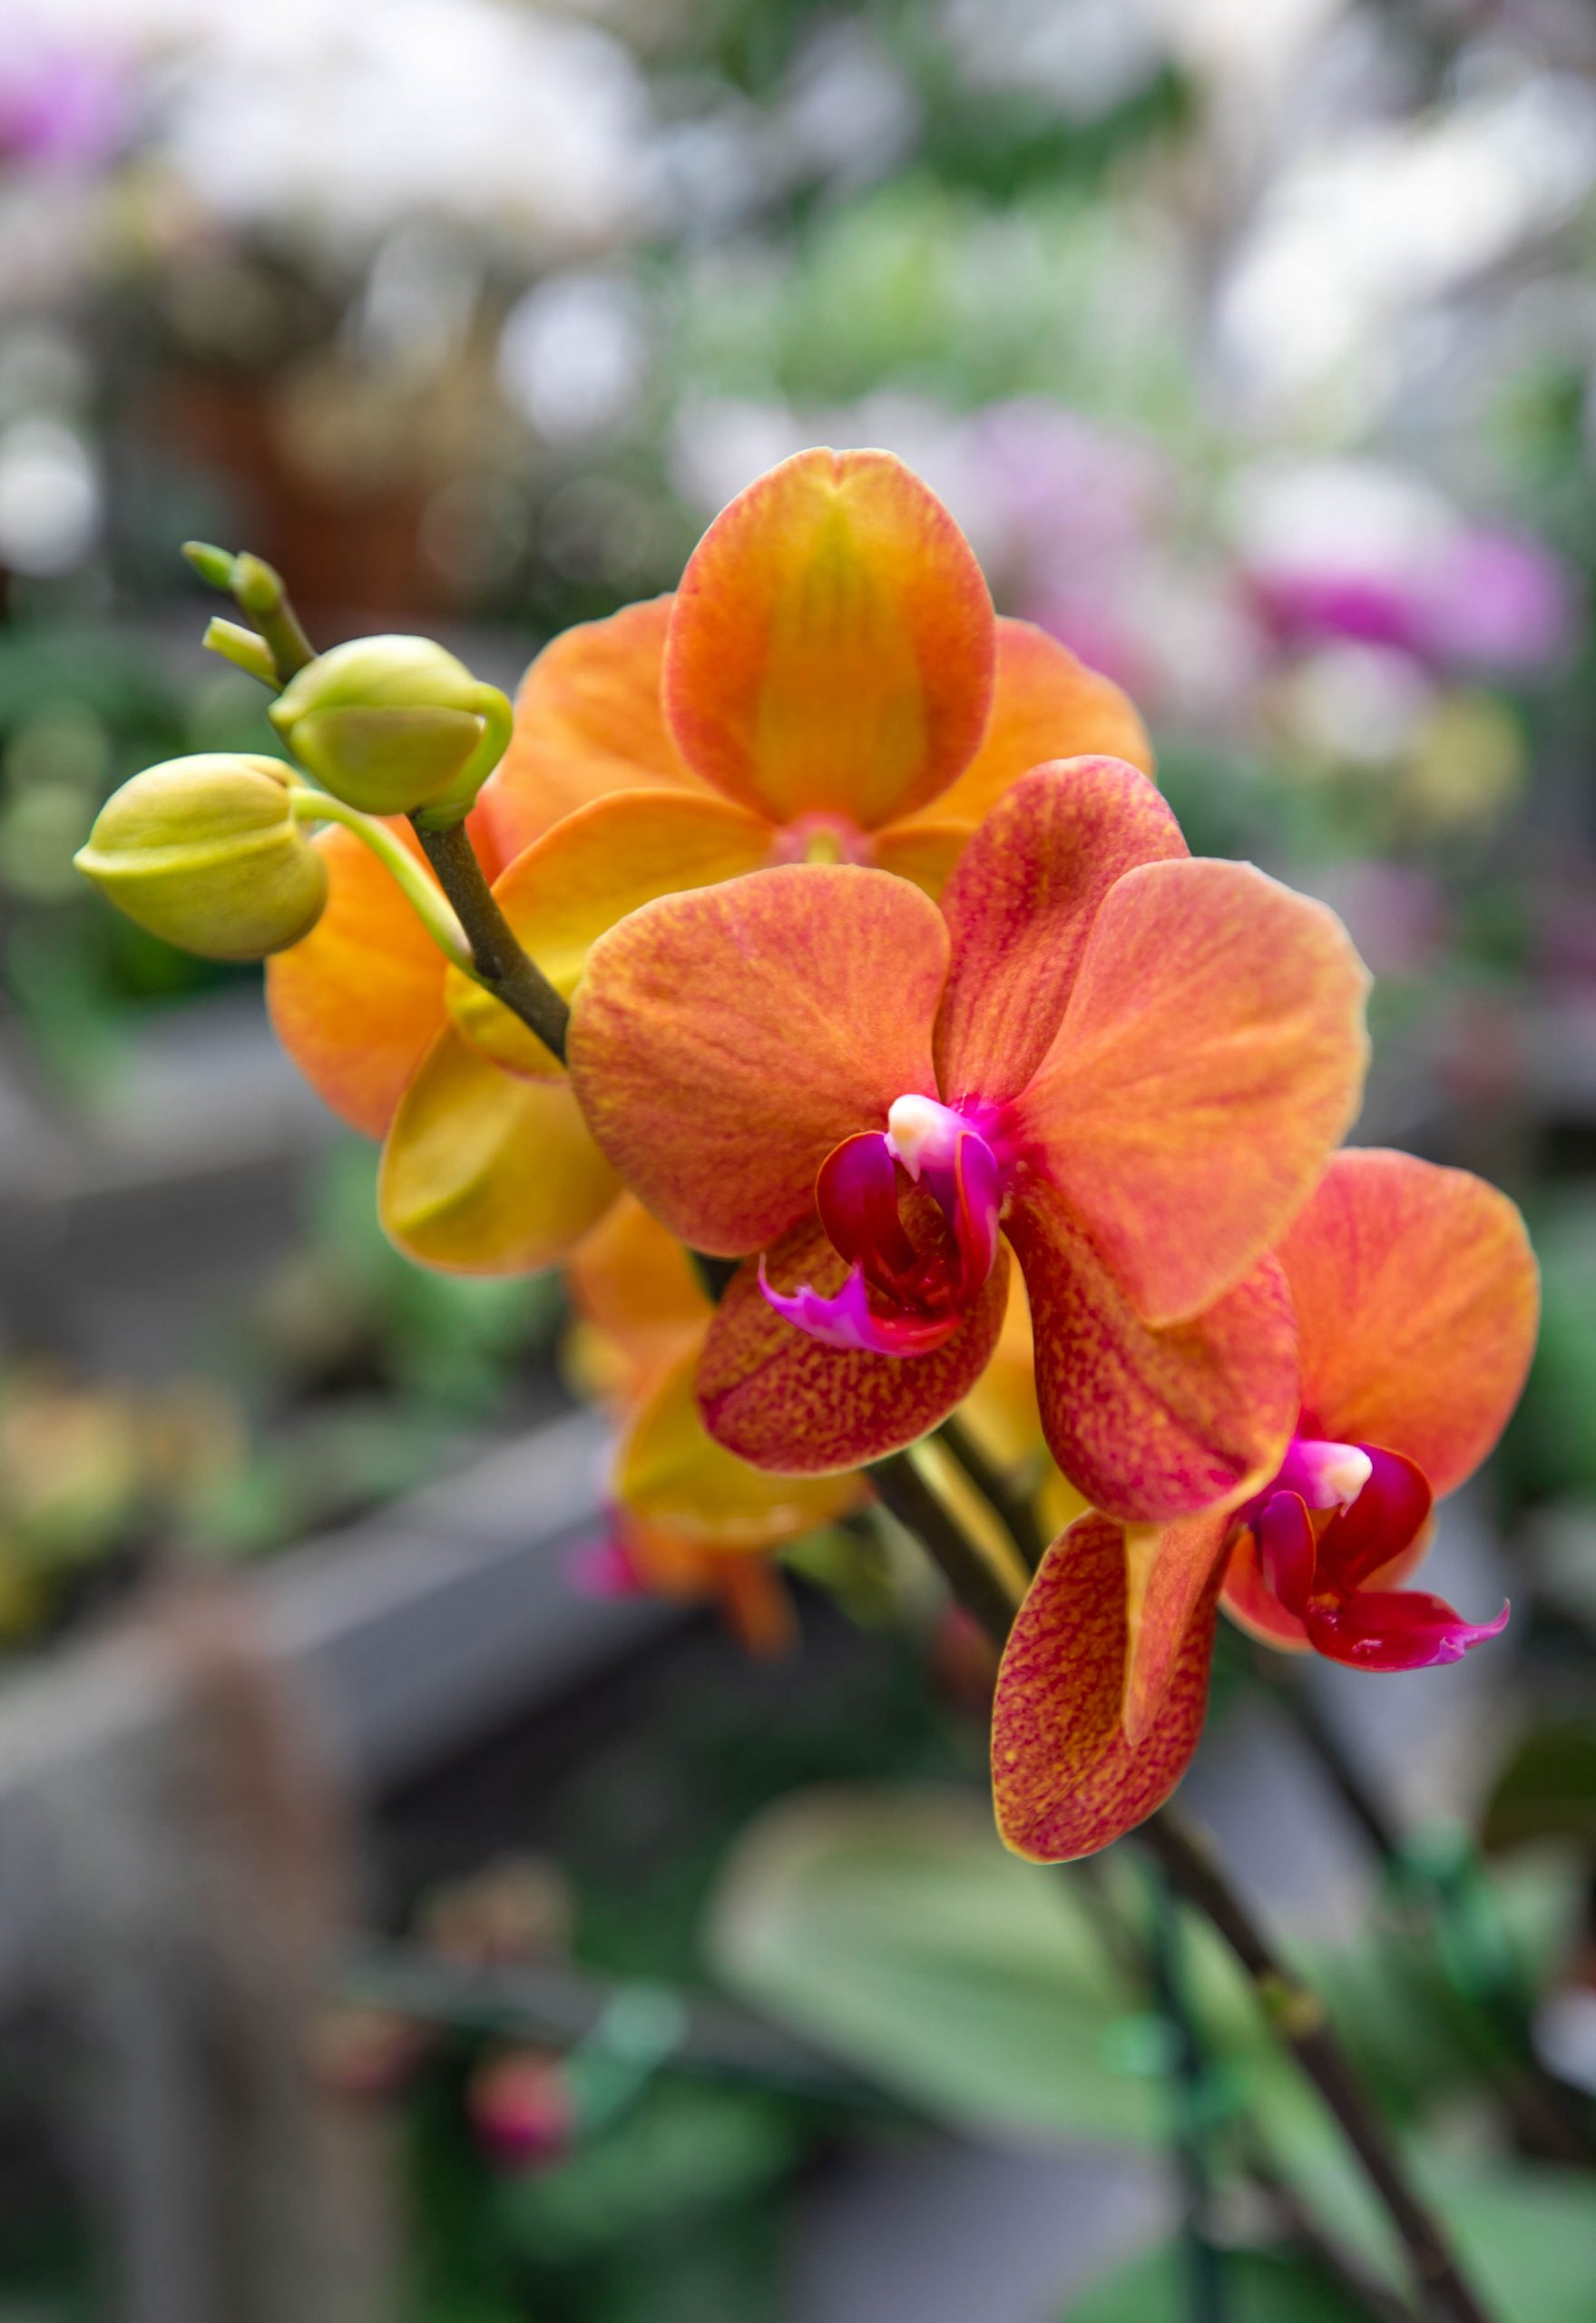 Sunset Orchids at Hillwood Estate, Museum & Gardens in Washington, D.C. by Luxury Travel Writer and Photographer Annie Fairfax